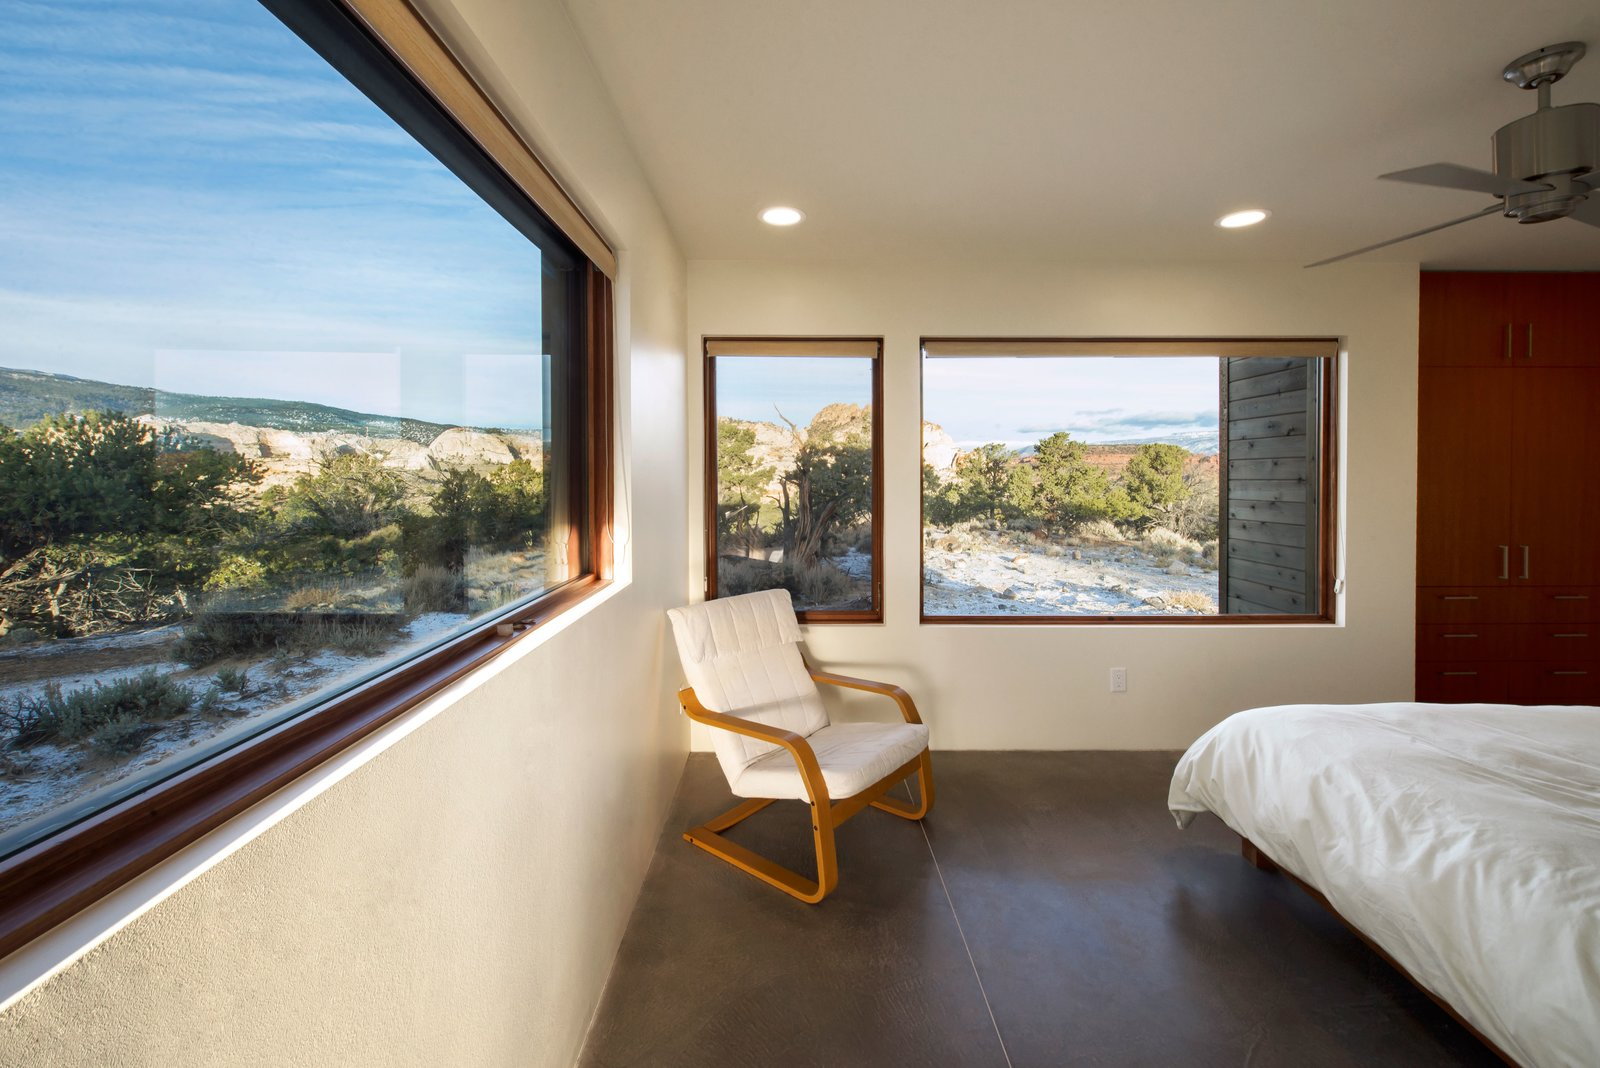 Guest House - Bedroom  Capitol Reef by Imbue Design